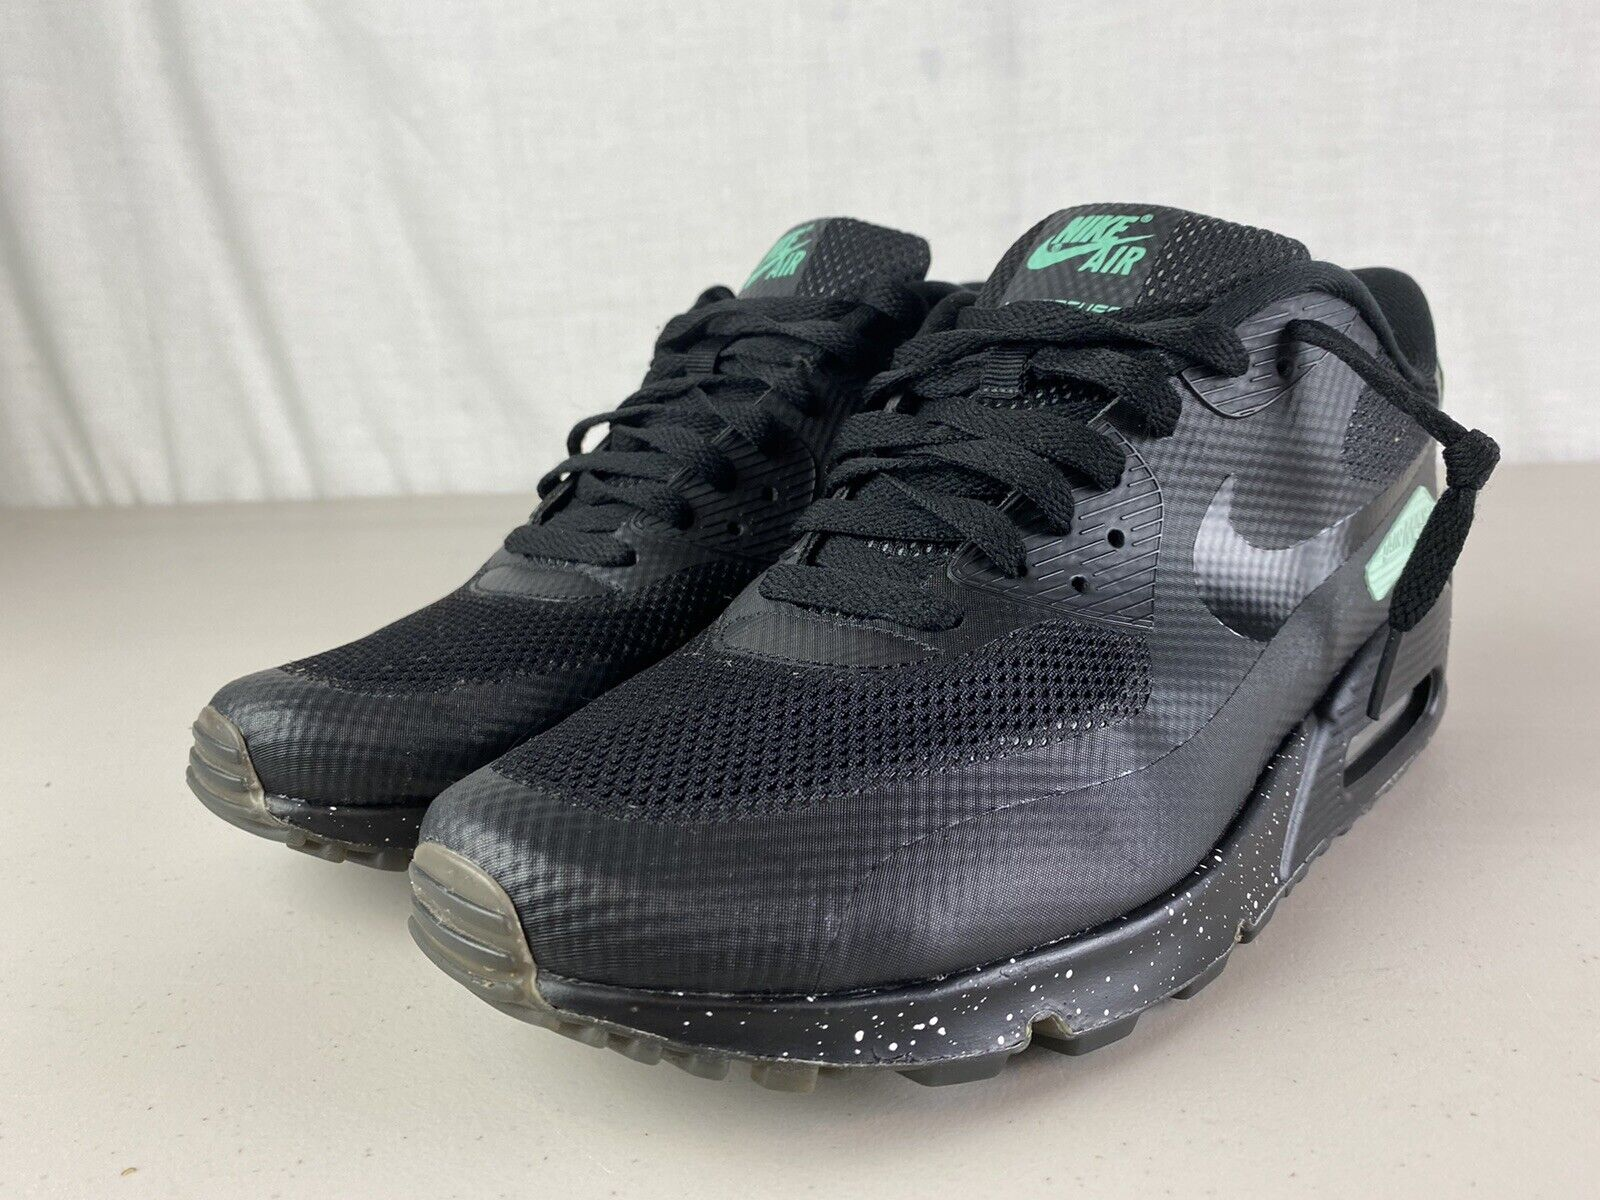 NIKE AIR MAX 90 HYPERFUSE PREMIUM ID BLACK AND MINT GREEN 10.5 653603-992